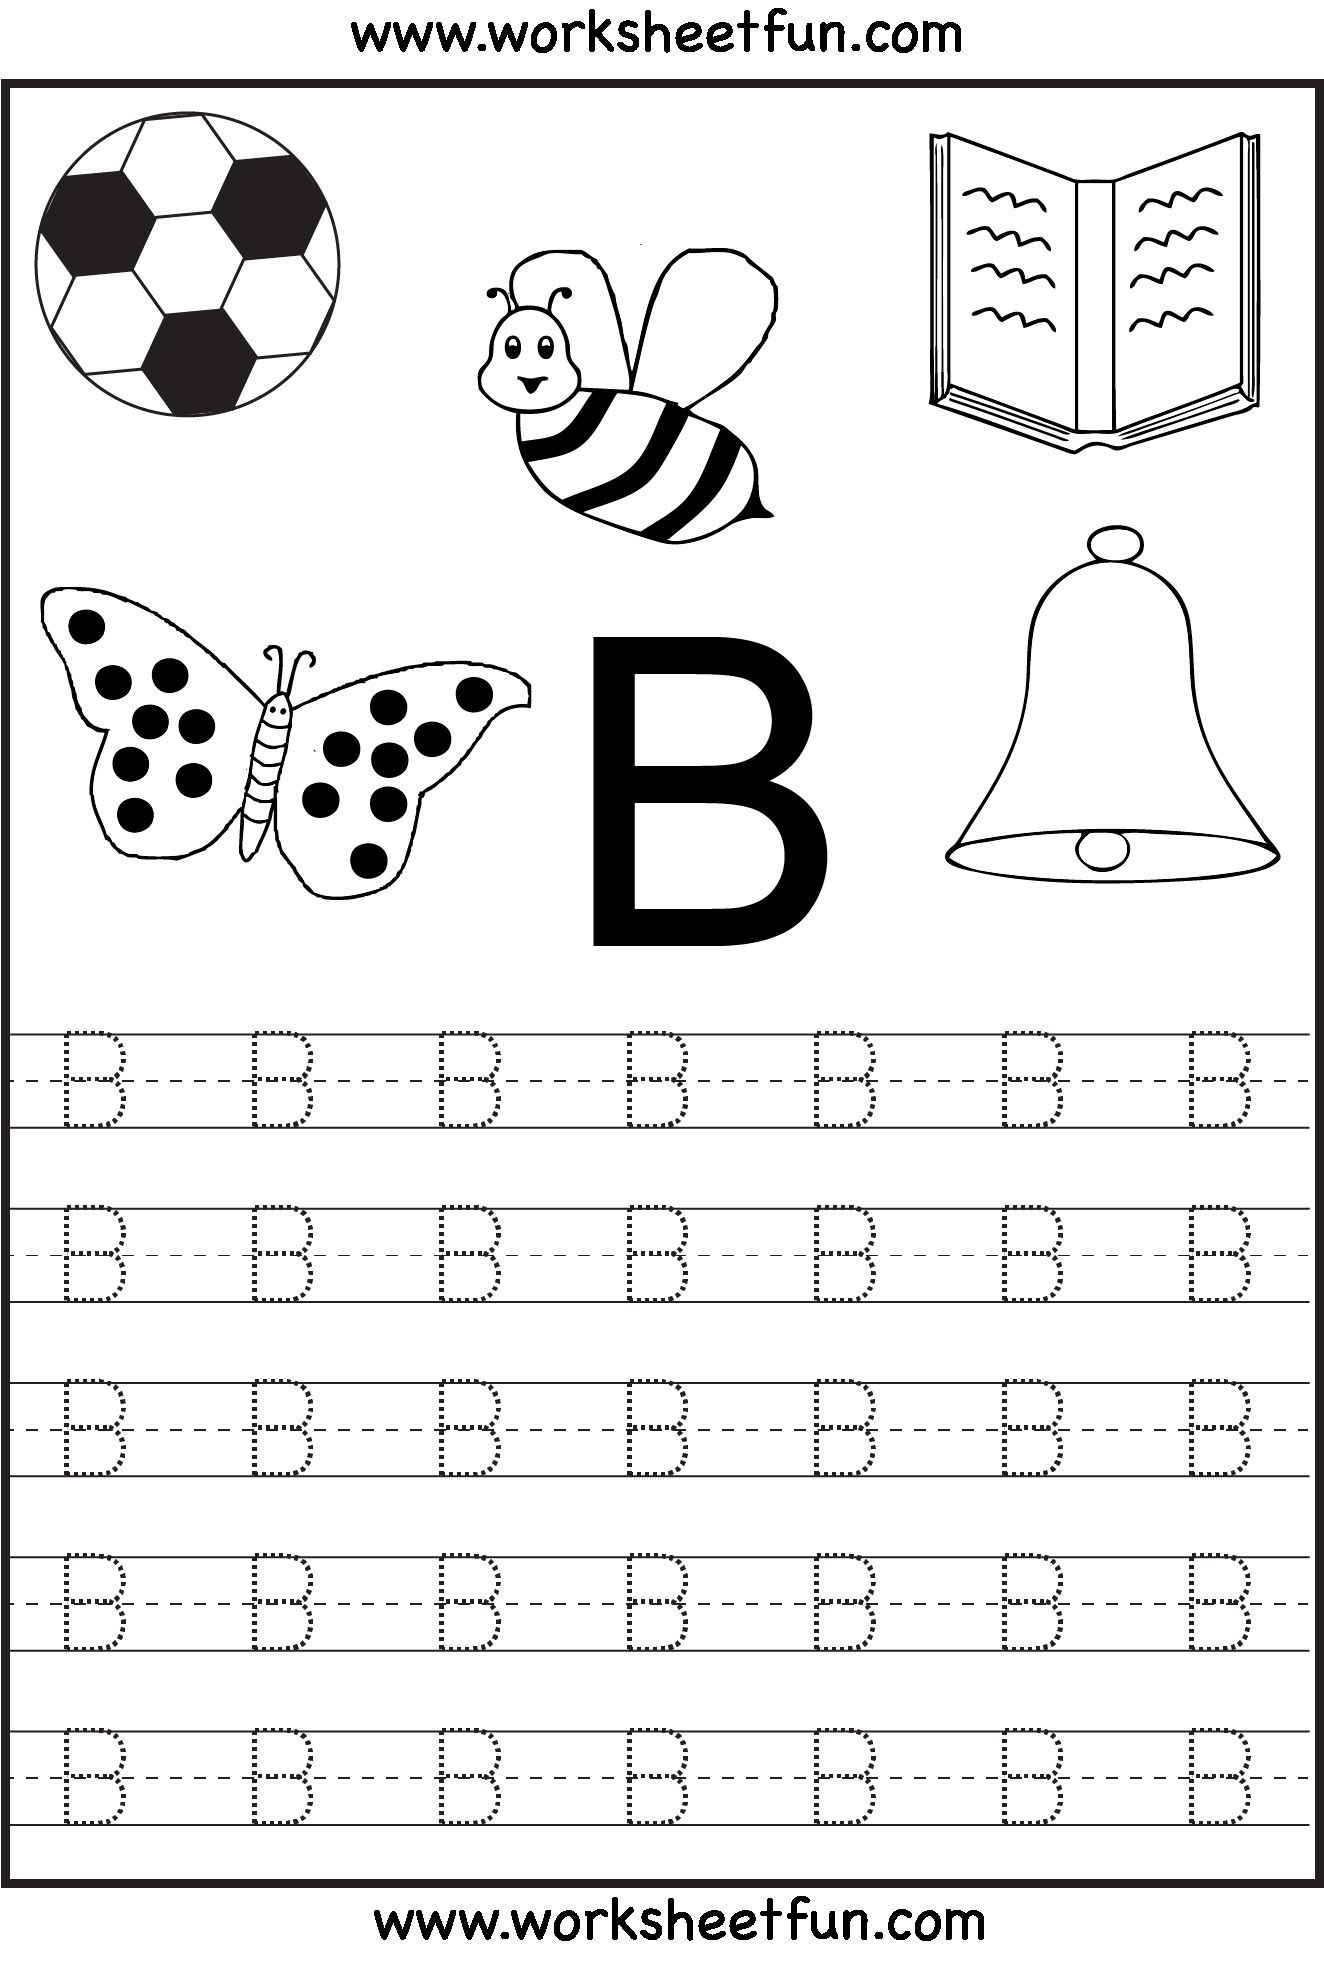 6 Worksheets Writing Lowercase P And B In 2020 Alphabet Worksheets Preschool Alphabet Tracing Worksheets Letter Tracing Worksheets [ 1970 x 1324 Pixel ]